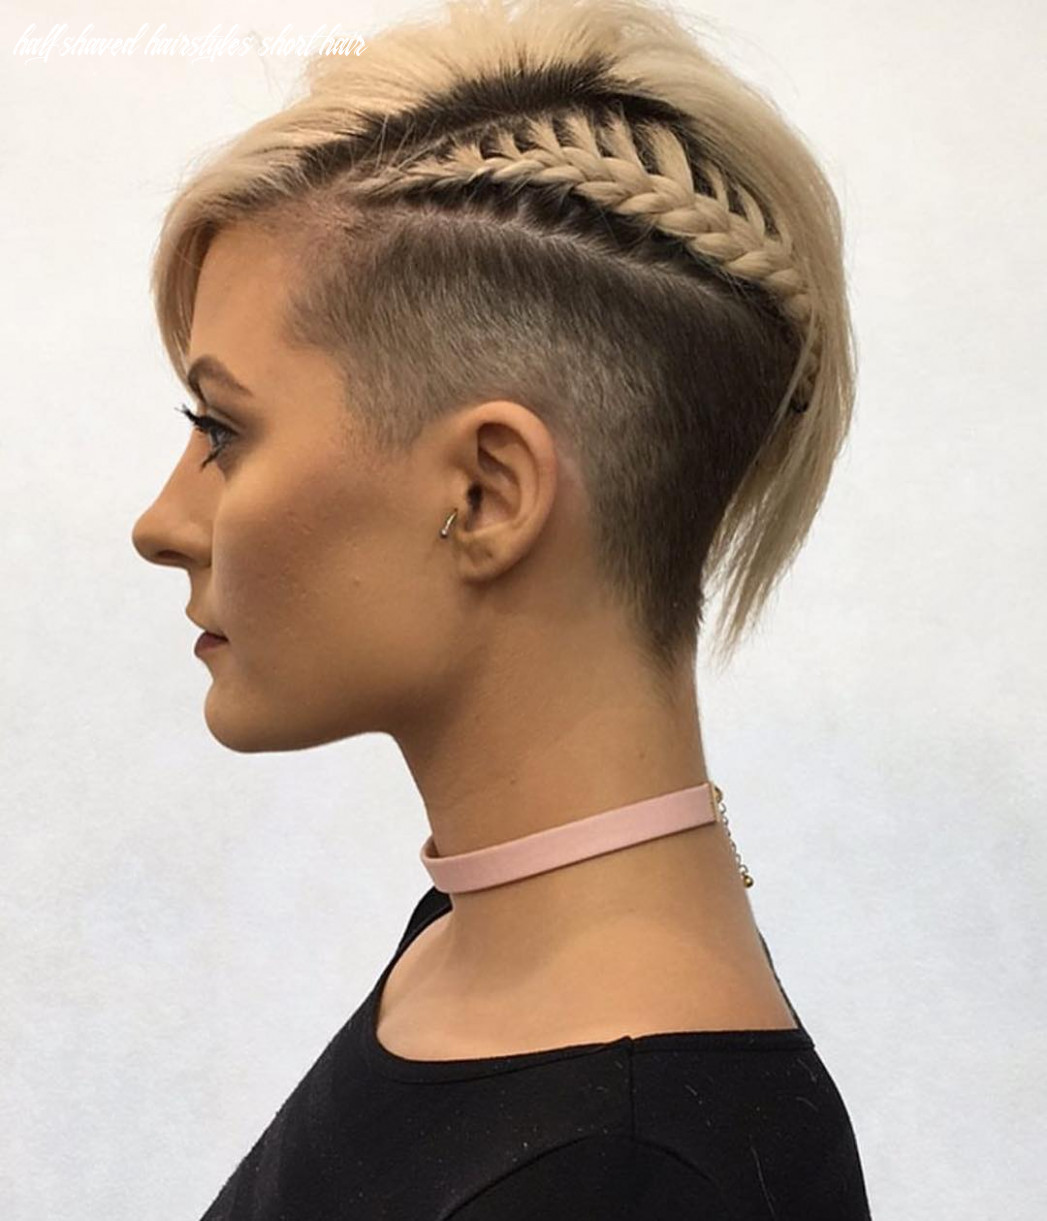 12 Chic Shaved Haircuts for Short Hair 12